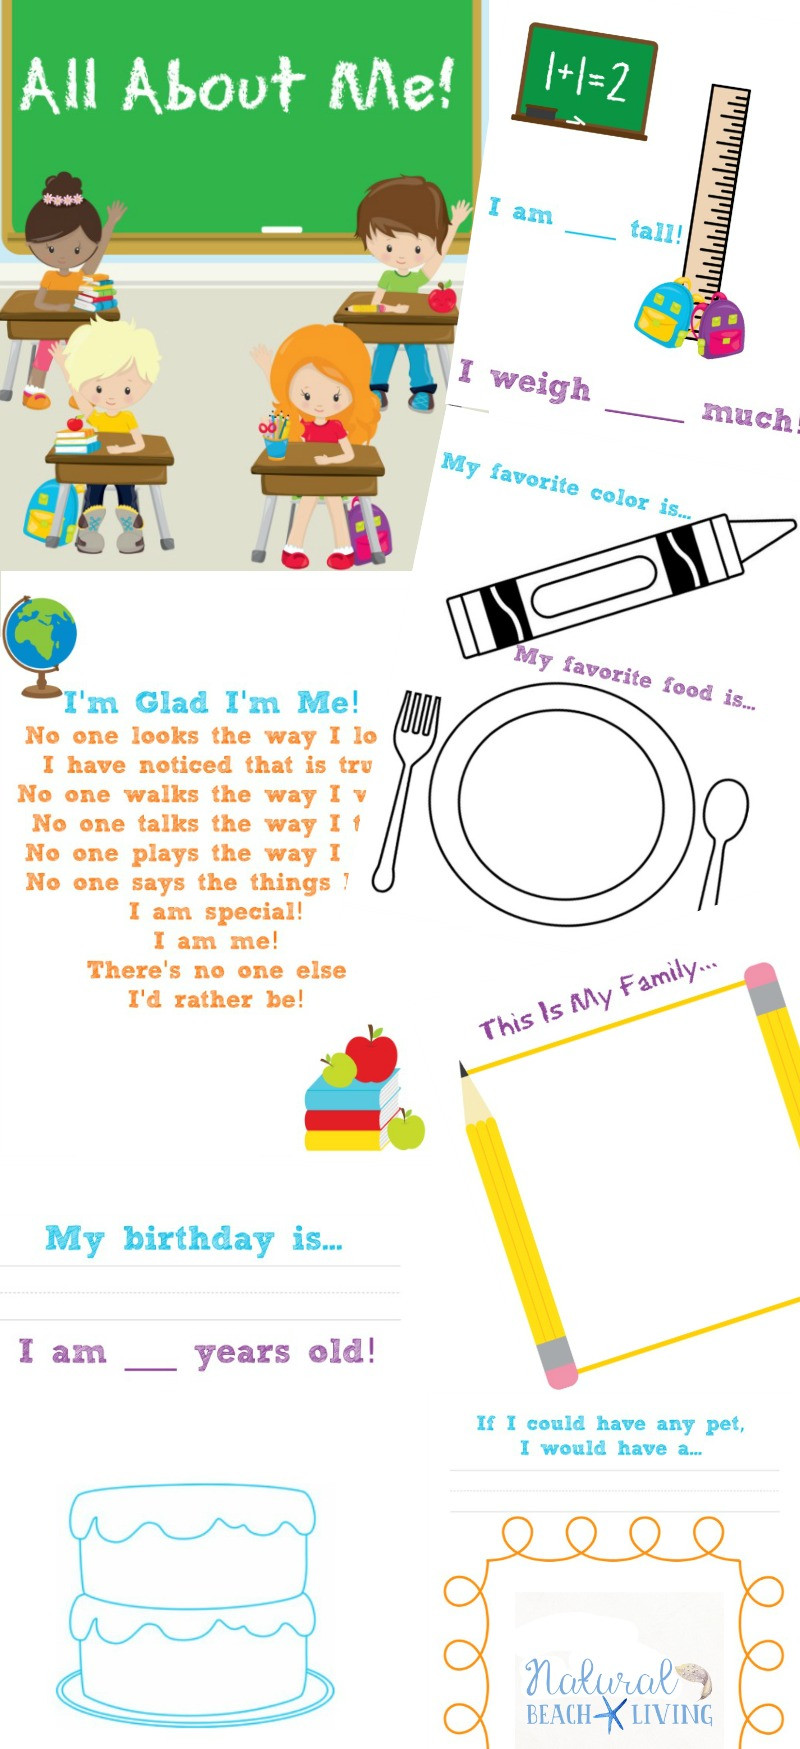 All About Me Worksheet Preschool the Best All About Me Preschool theme Printables Natural